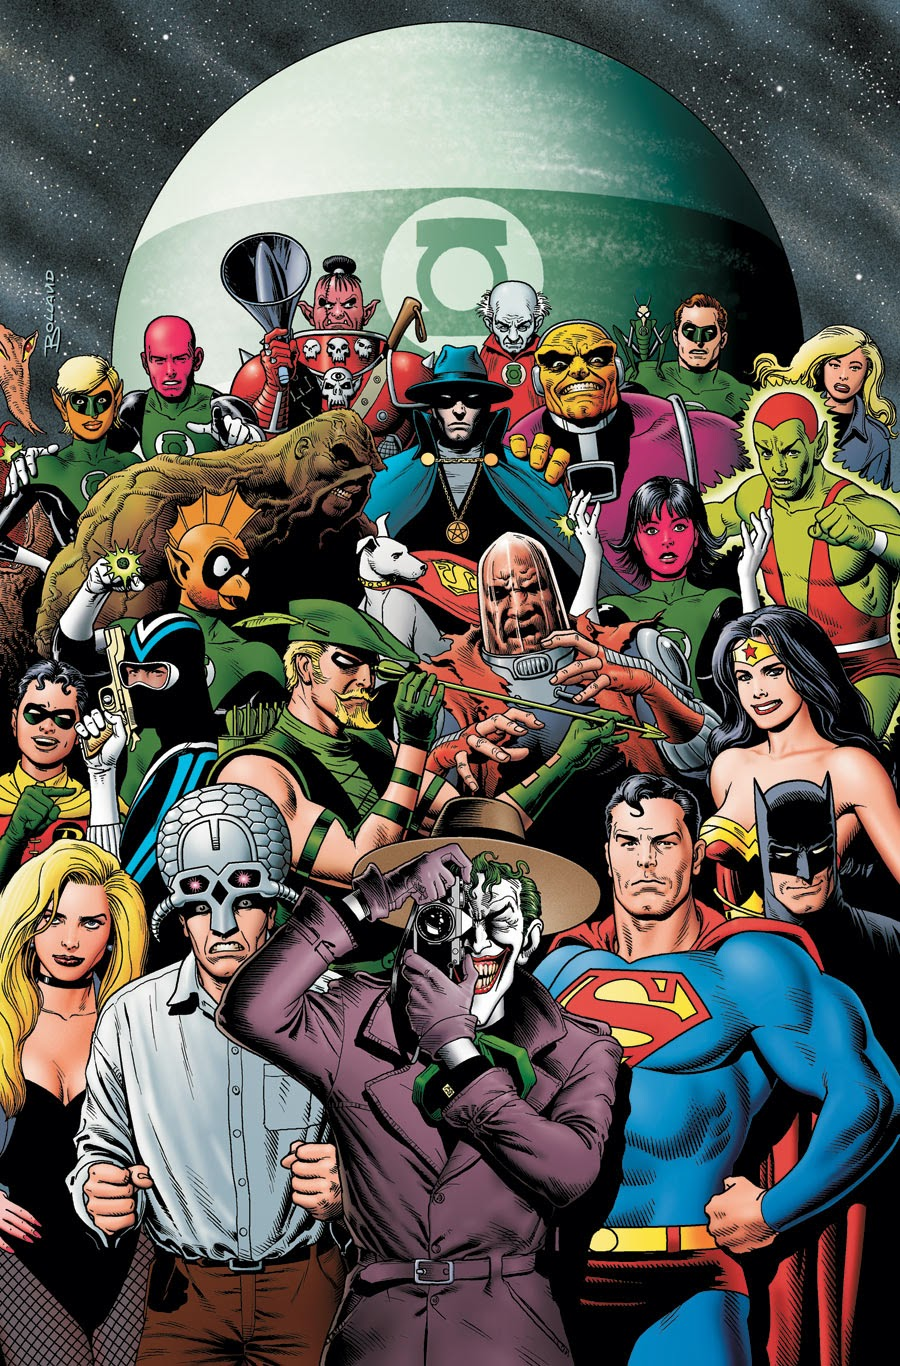 Apocalypse Vs Dracula moreover How To Draw Red Hood as well How To Draw Batgirl From Dc Super Hero Girls Printable in addition ic Book Clip Art 4 in addition Top 20 Mejores  ics De Alan Moore. on marvel superhero dog